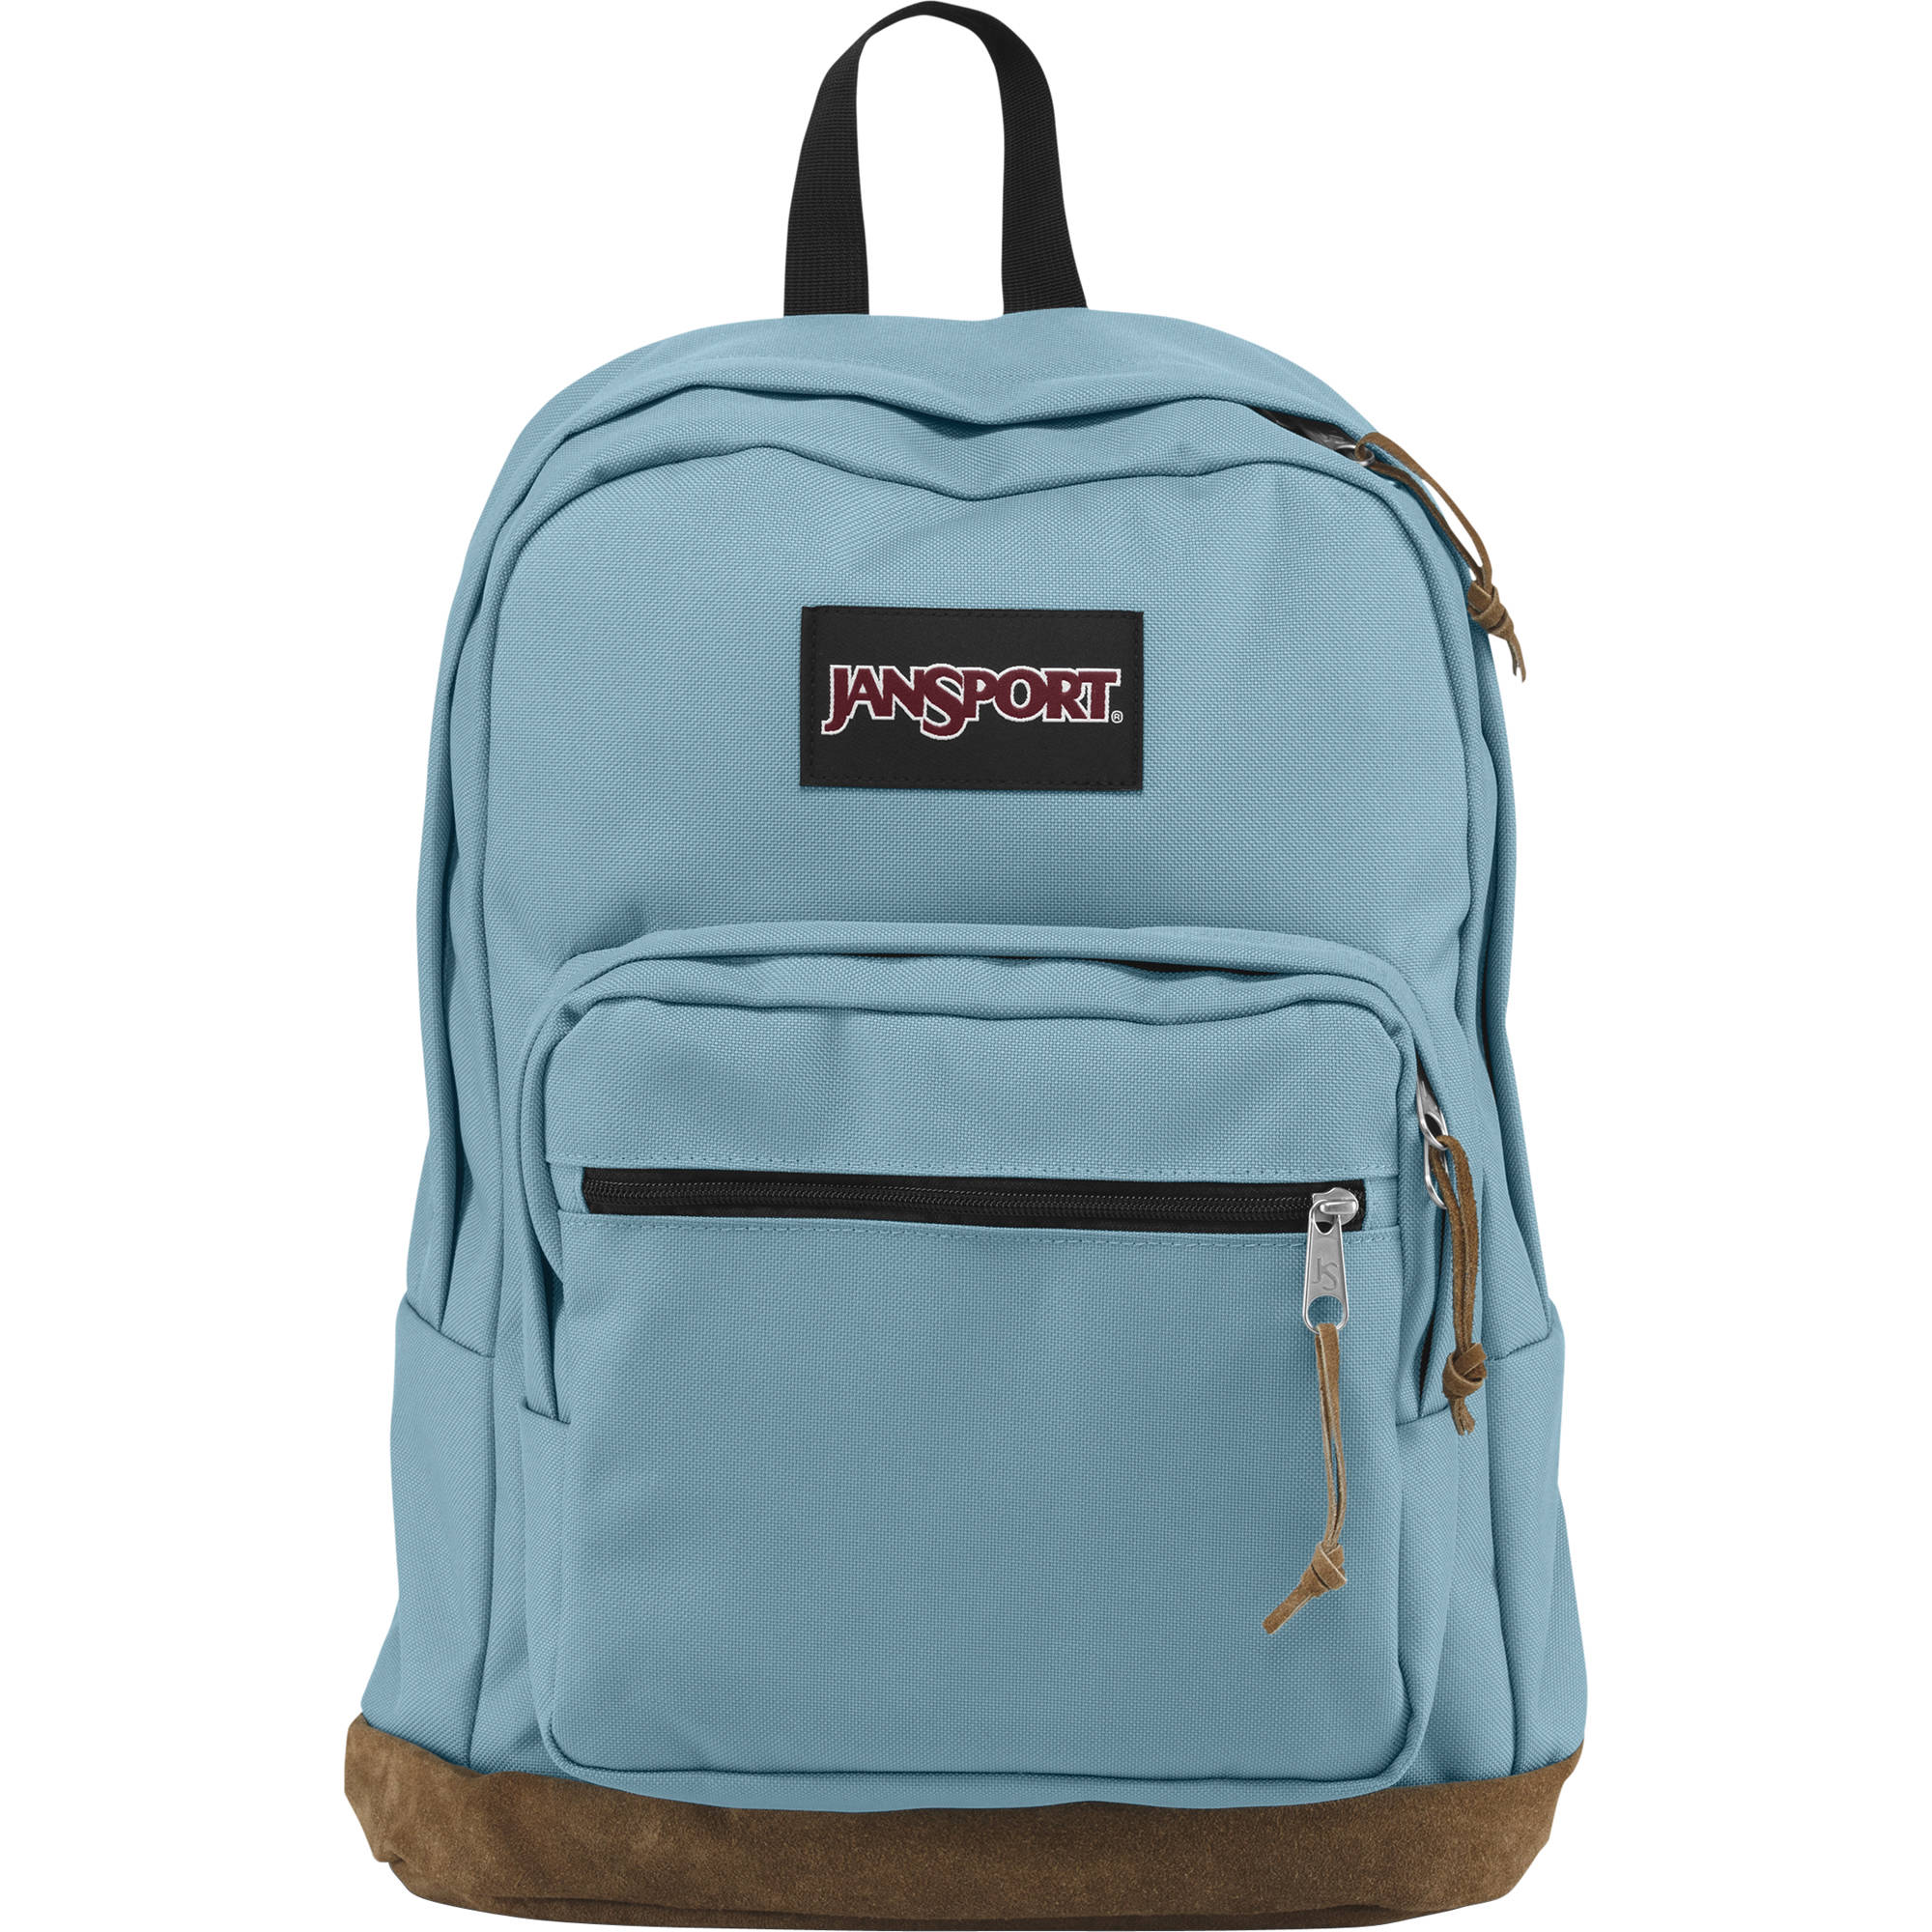 Jansport Right Pack Backpack v5Ankudc